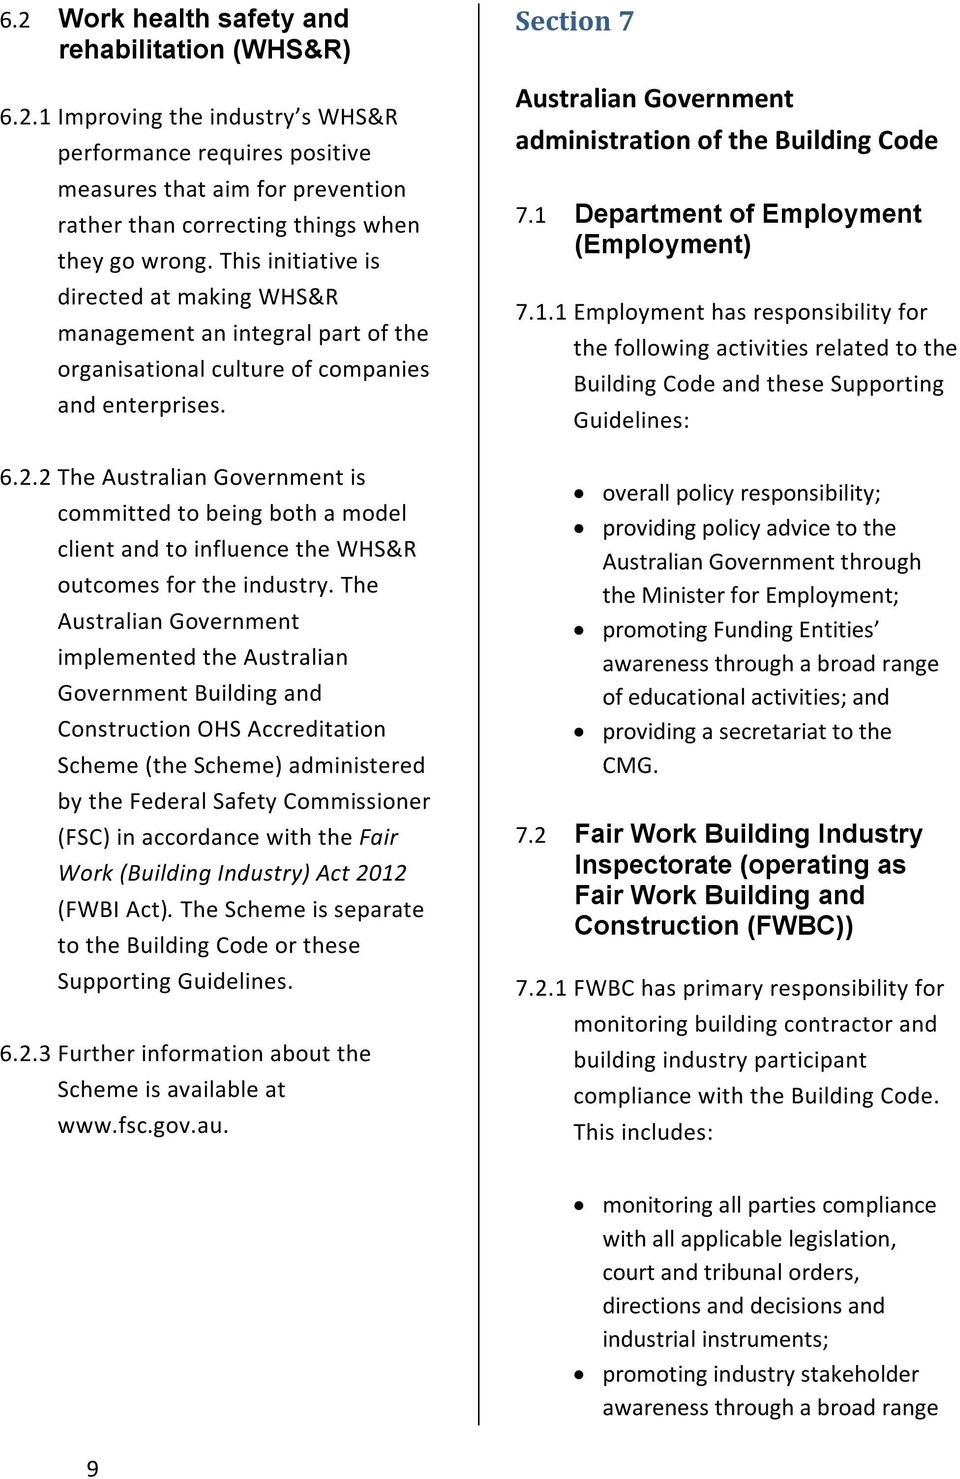 2 The Australian Government is committed to being both a model client and to influence the WHS&R outcomes for the industry.